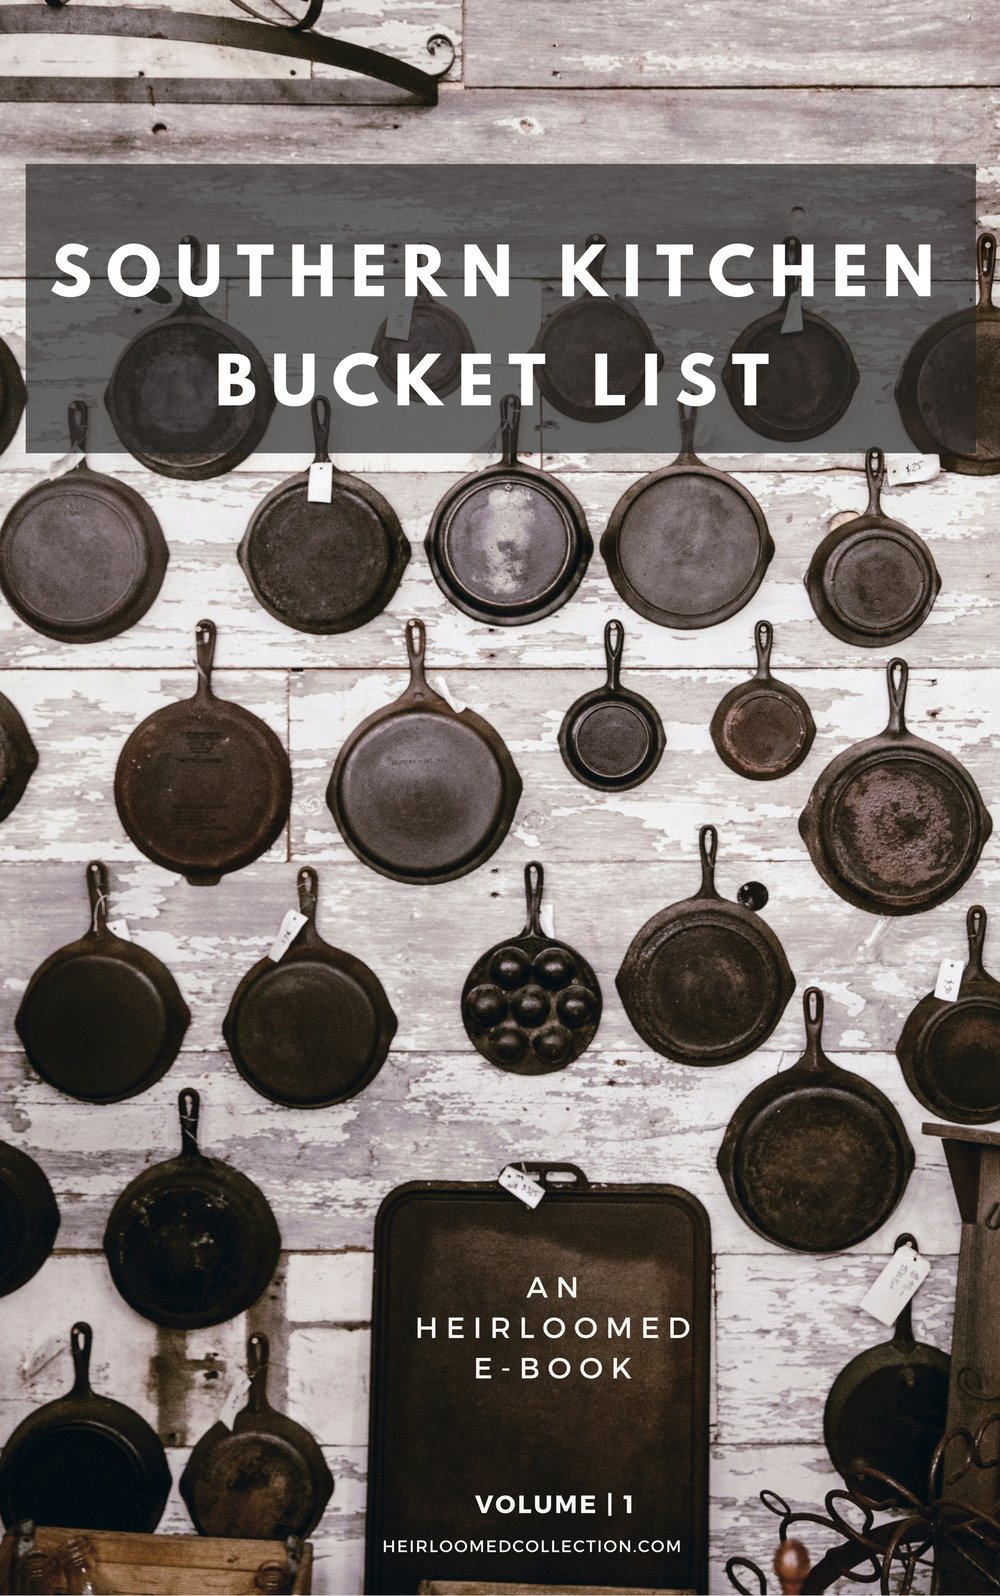 SOUTHERN KITCHEN BUCKET LIST (VOLUME 1)